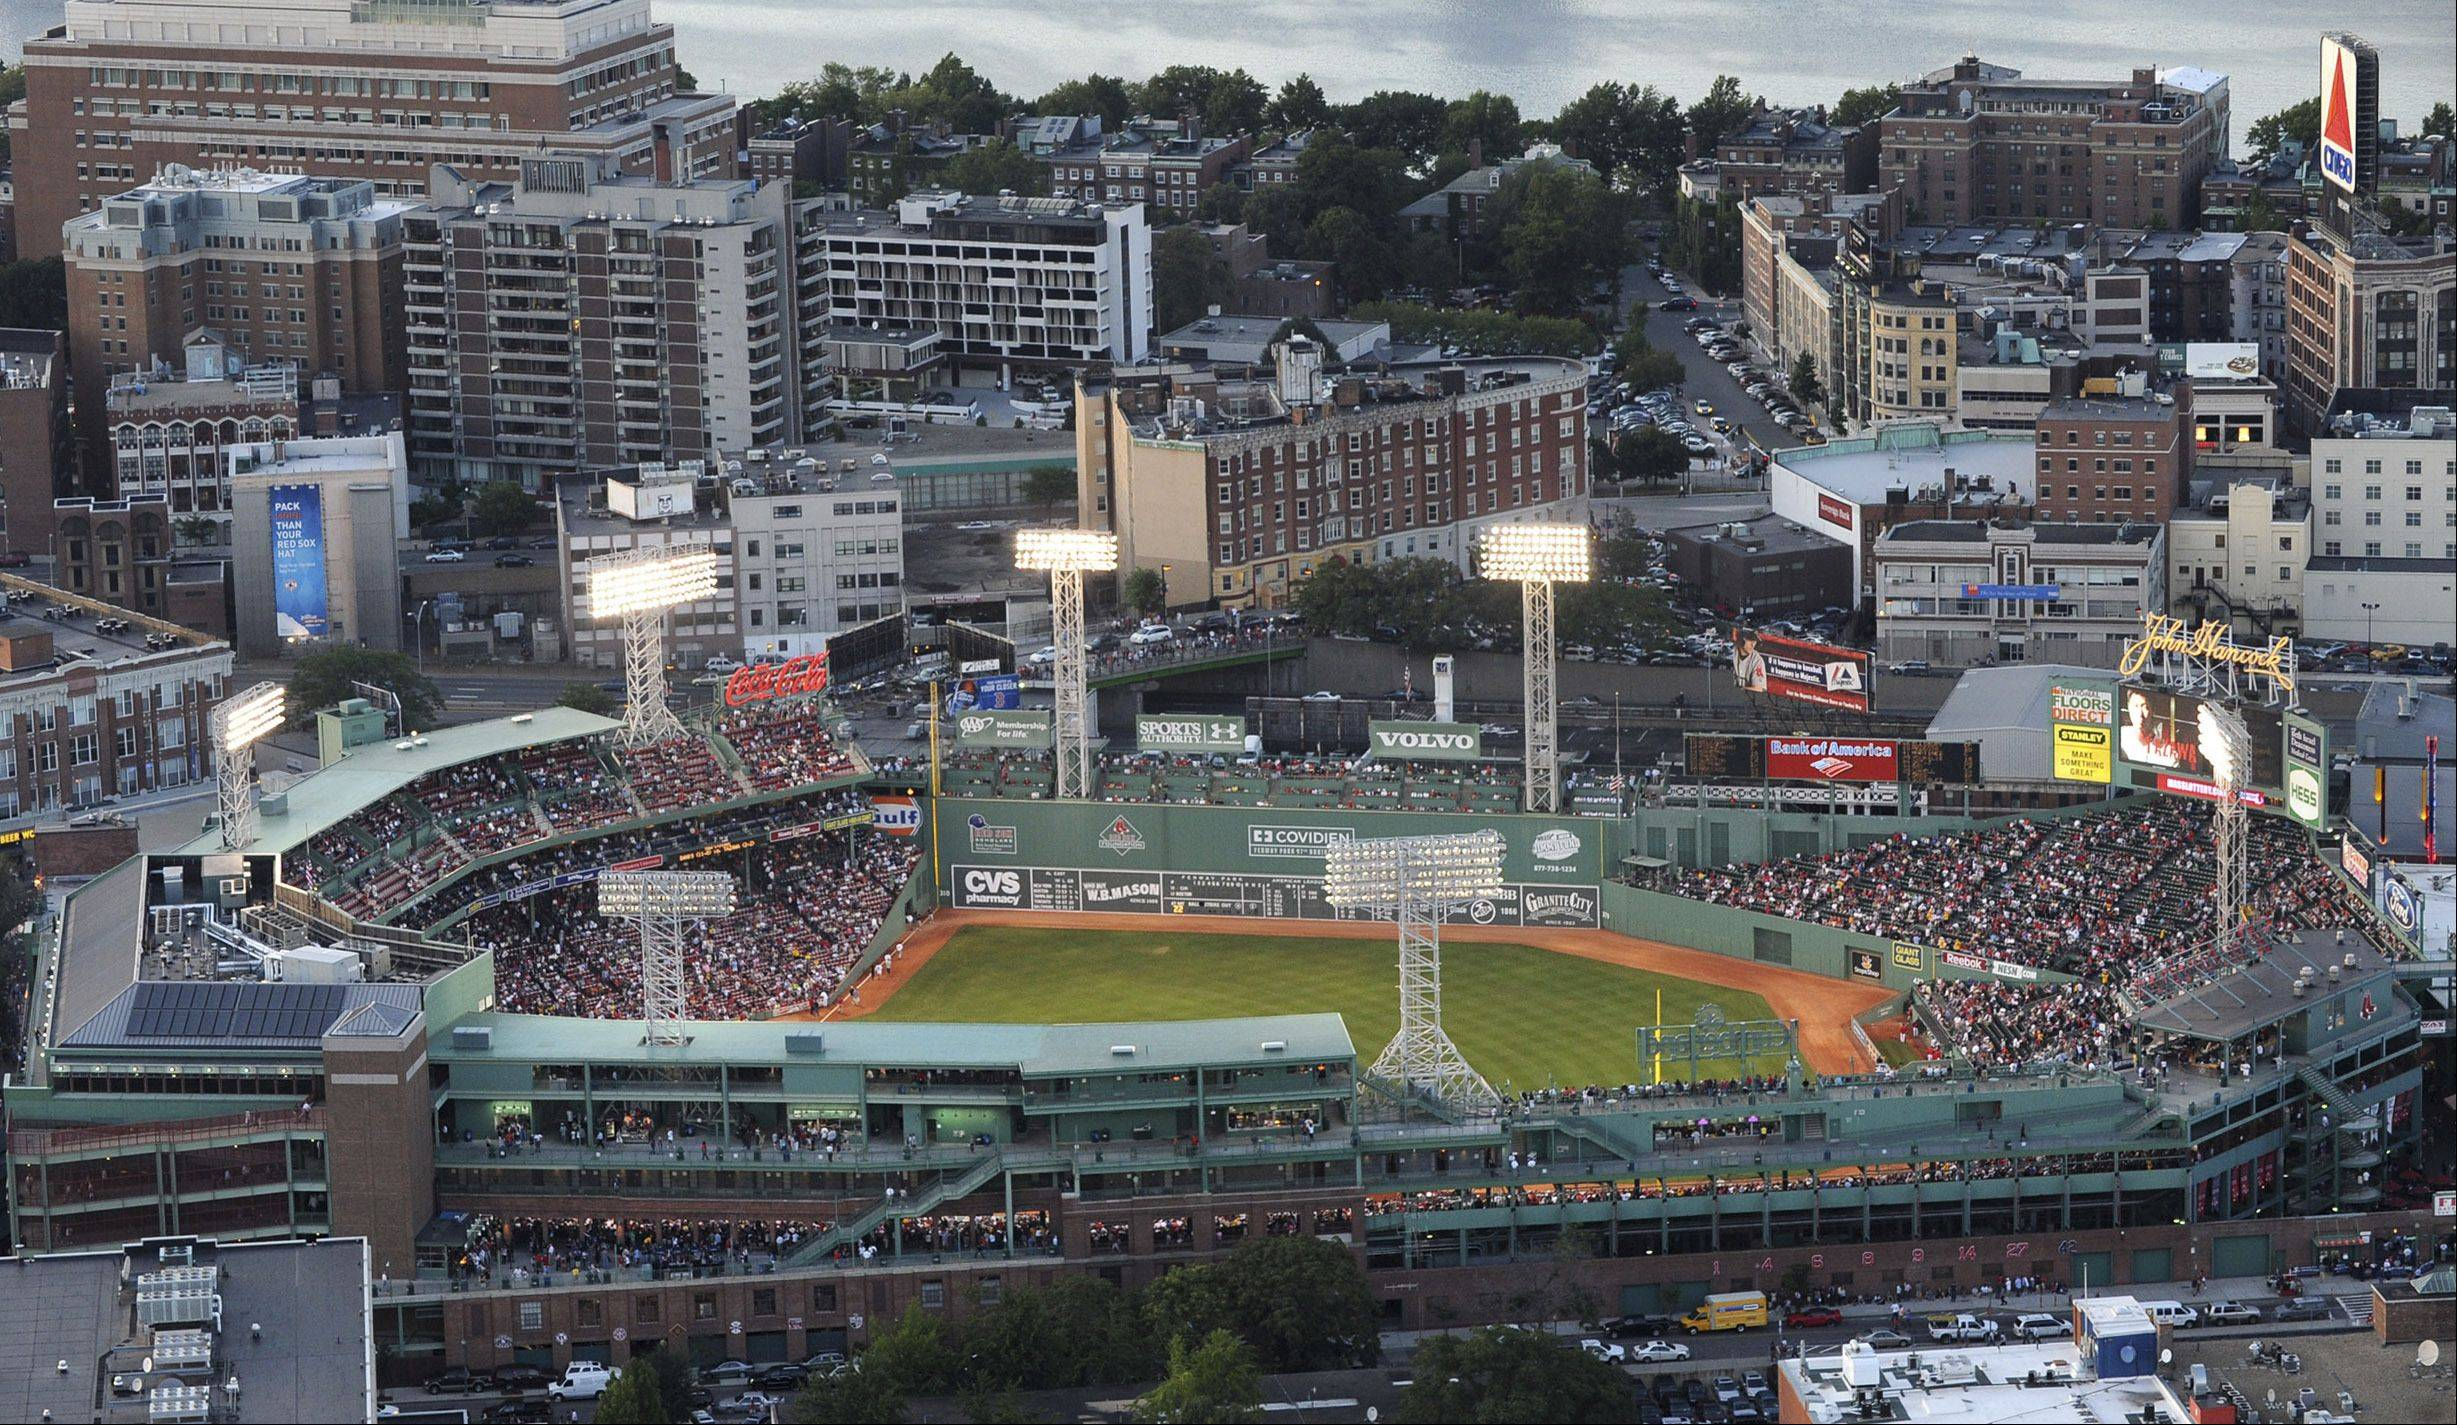 An aerial view of Fenway Park in Boston.